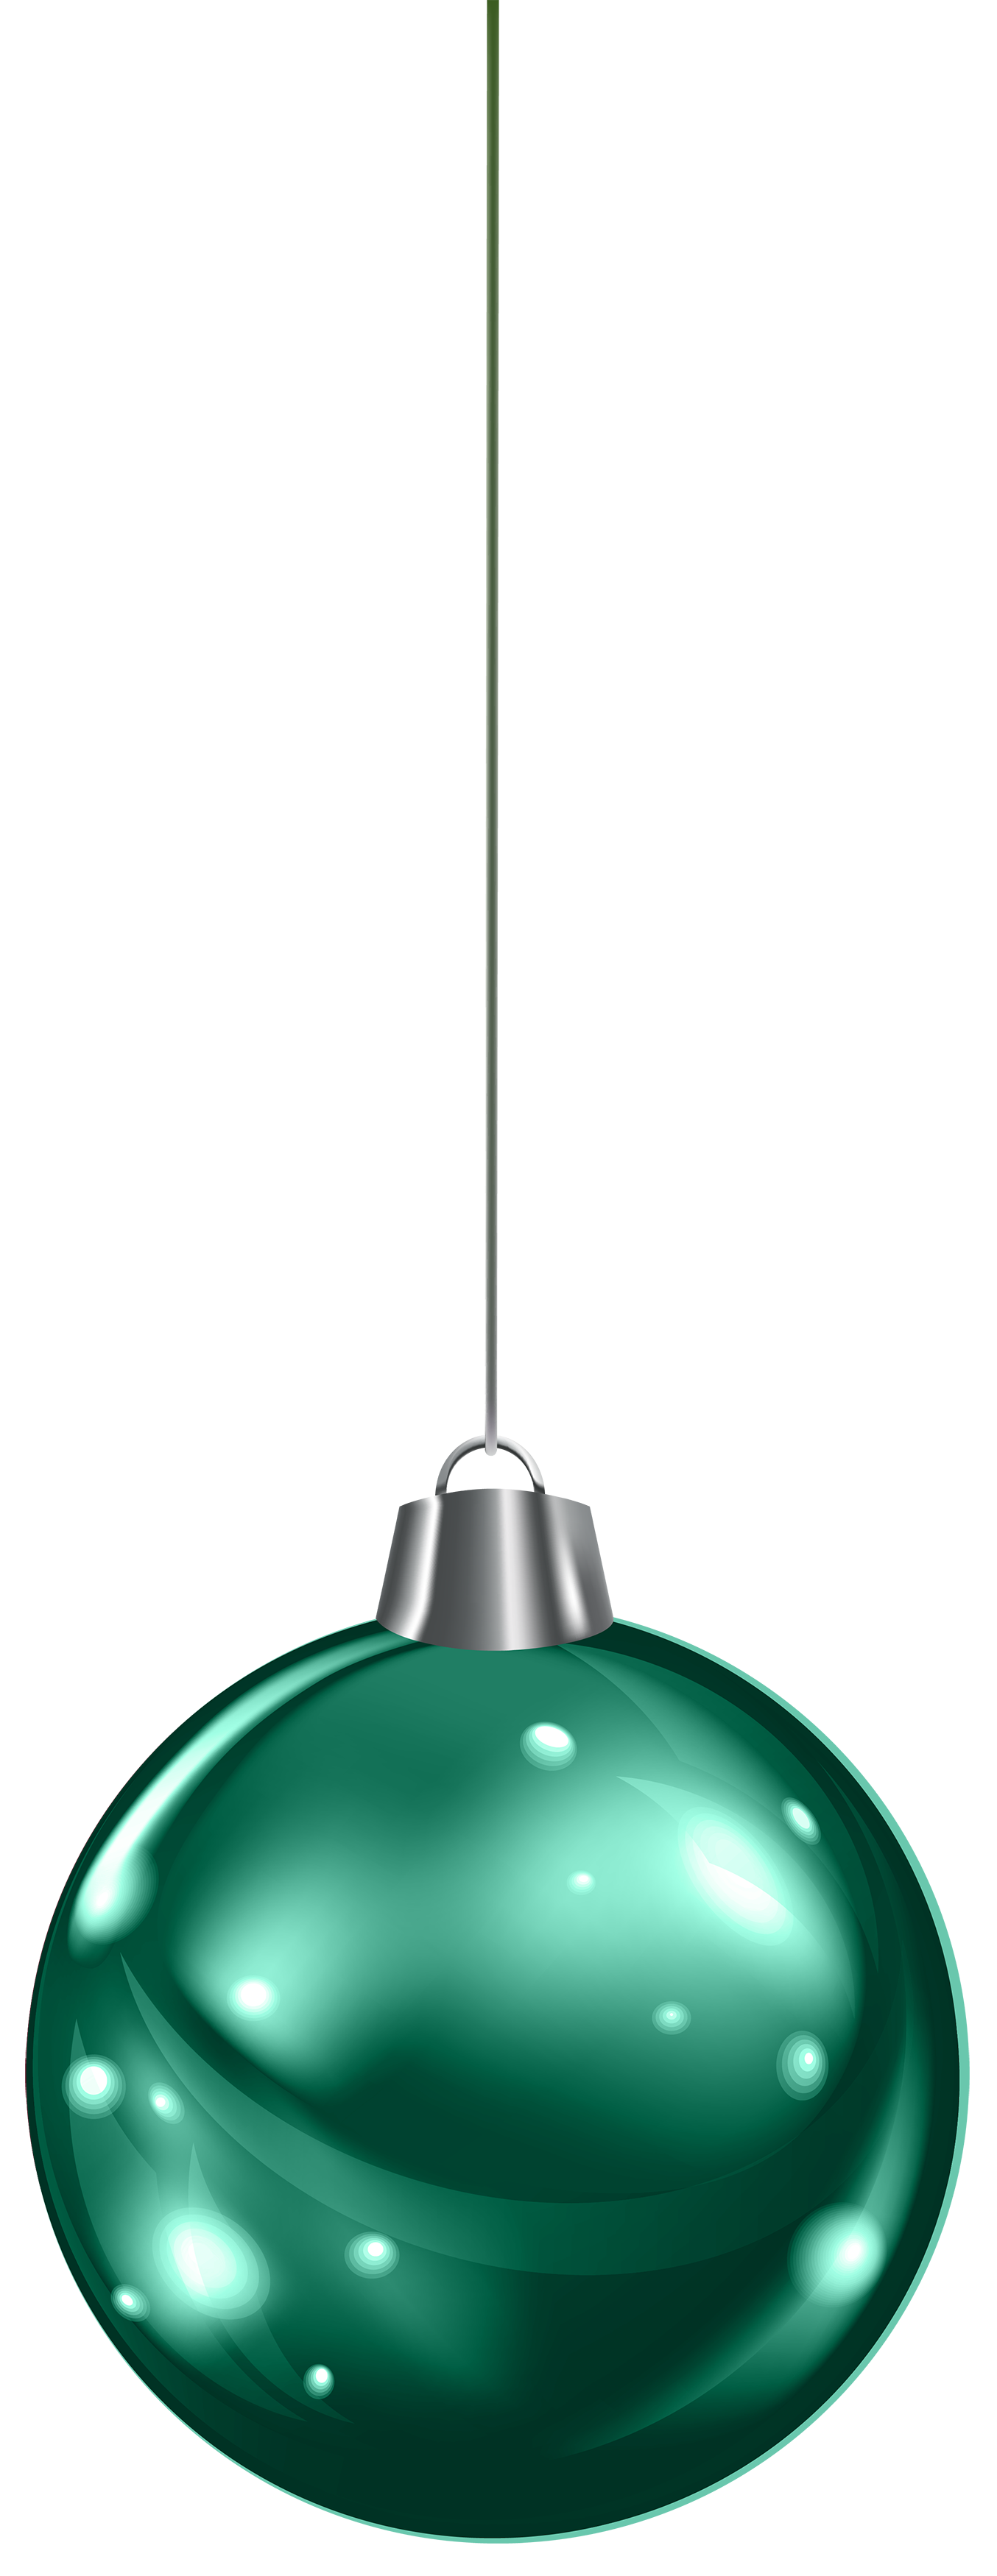 Glass clipart christmas. Hanging green ball png